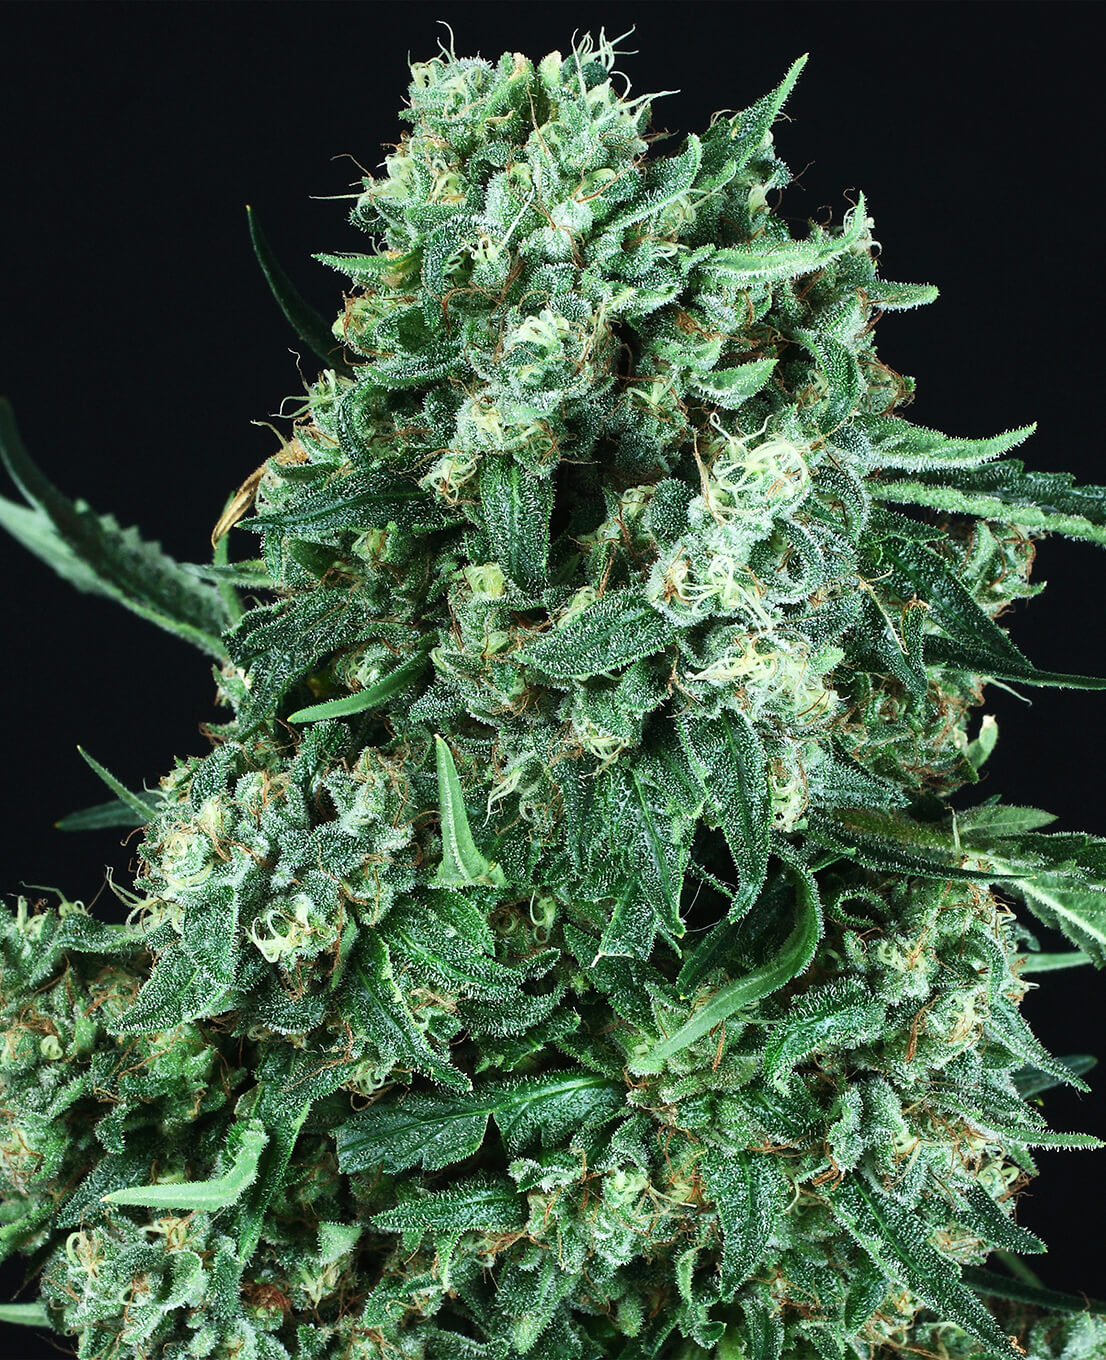 Buy OG Kush Feminized cannabis seeds – Weed Seed Shop